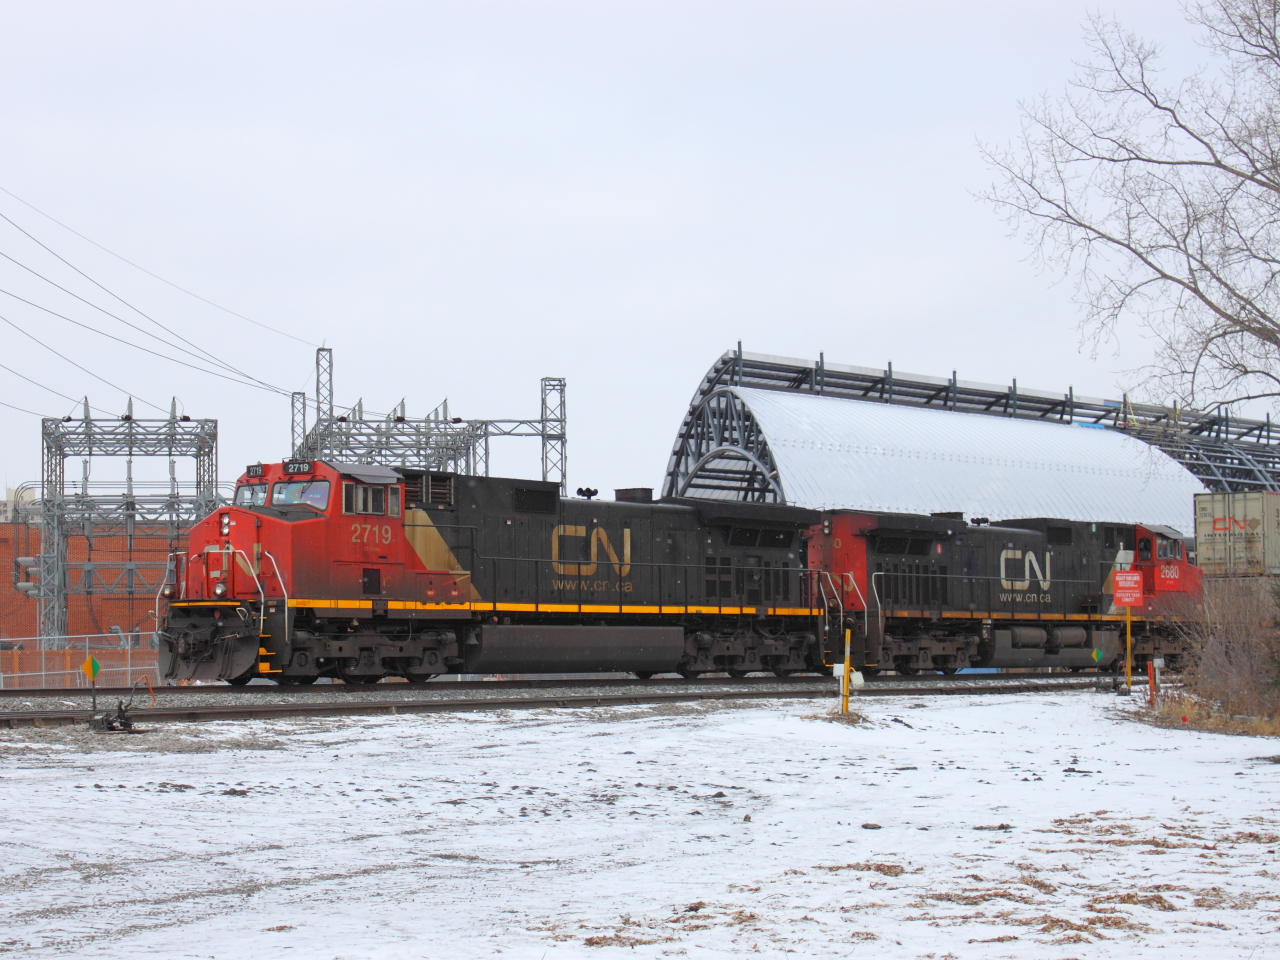 IC 2719 in Winnipeg, MB 2011/12/03